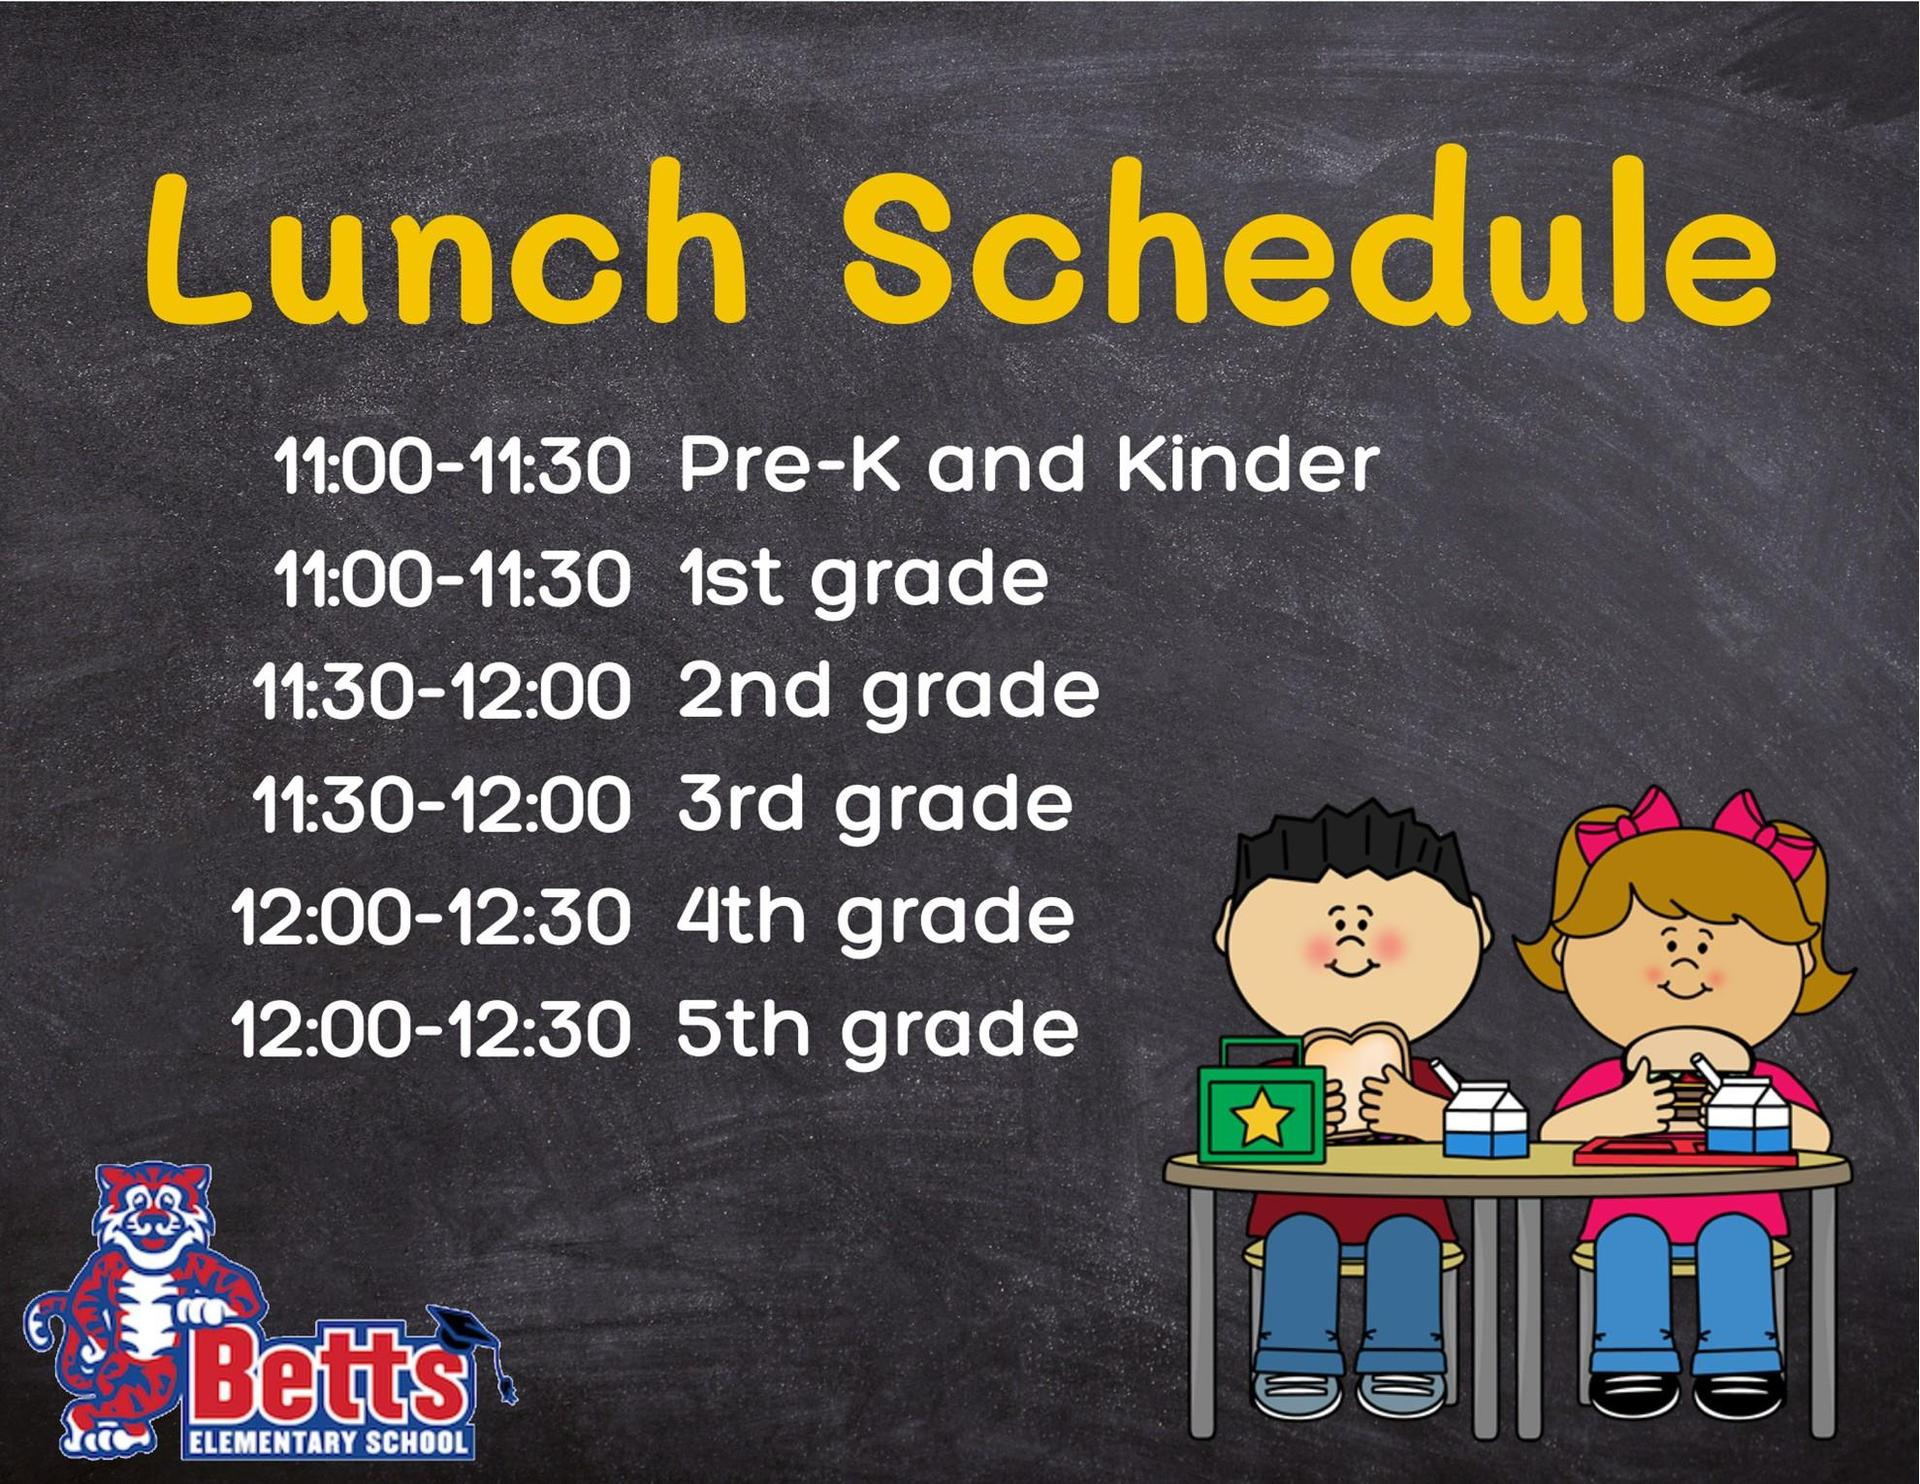 Image of Lunch Schedule poster